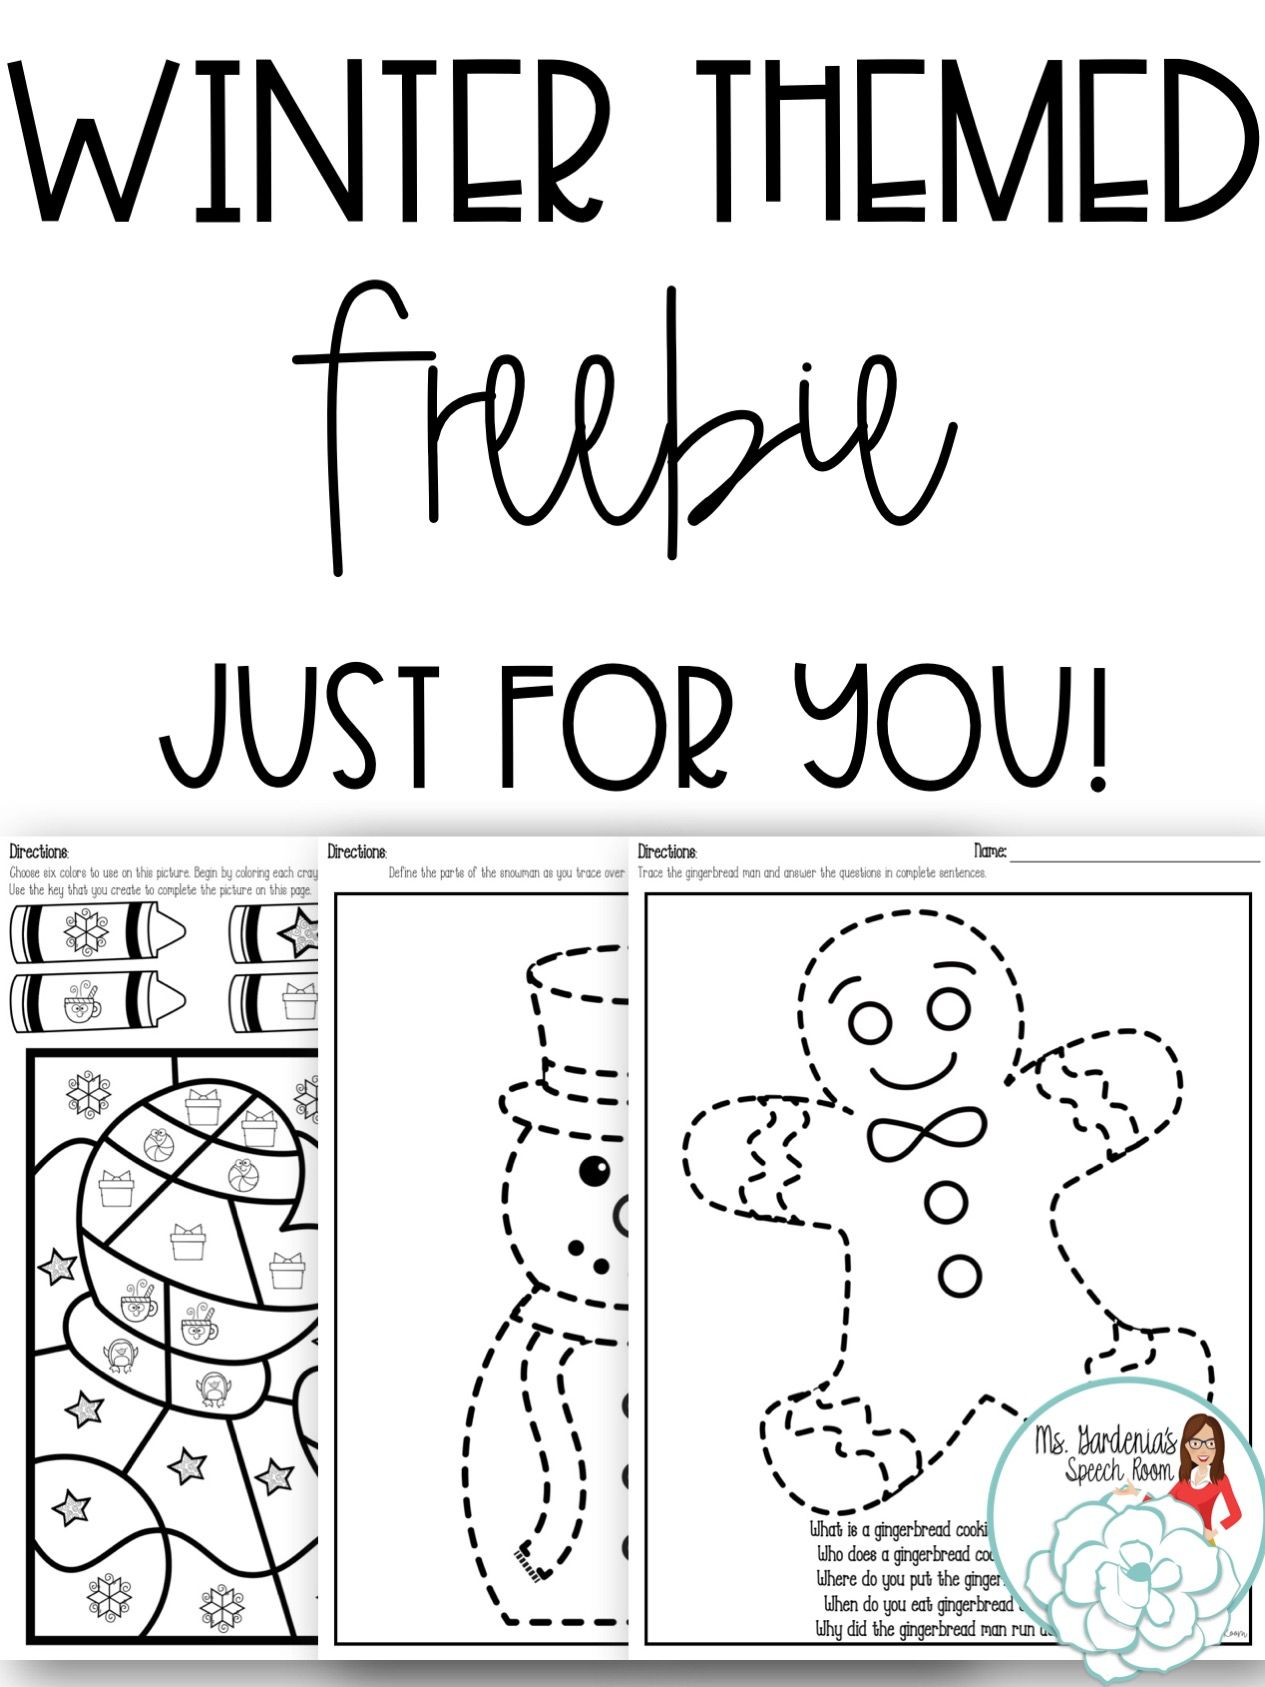 Get Three Free No Prep Winter Themed Worksheets By Signing